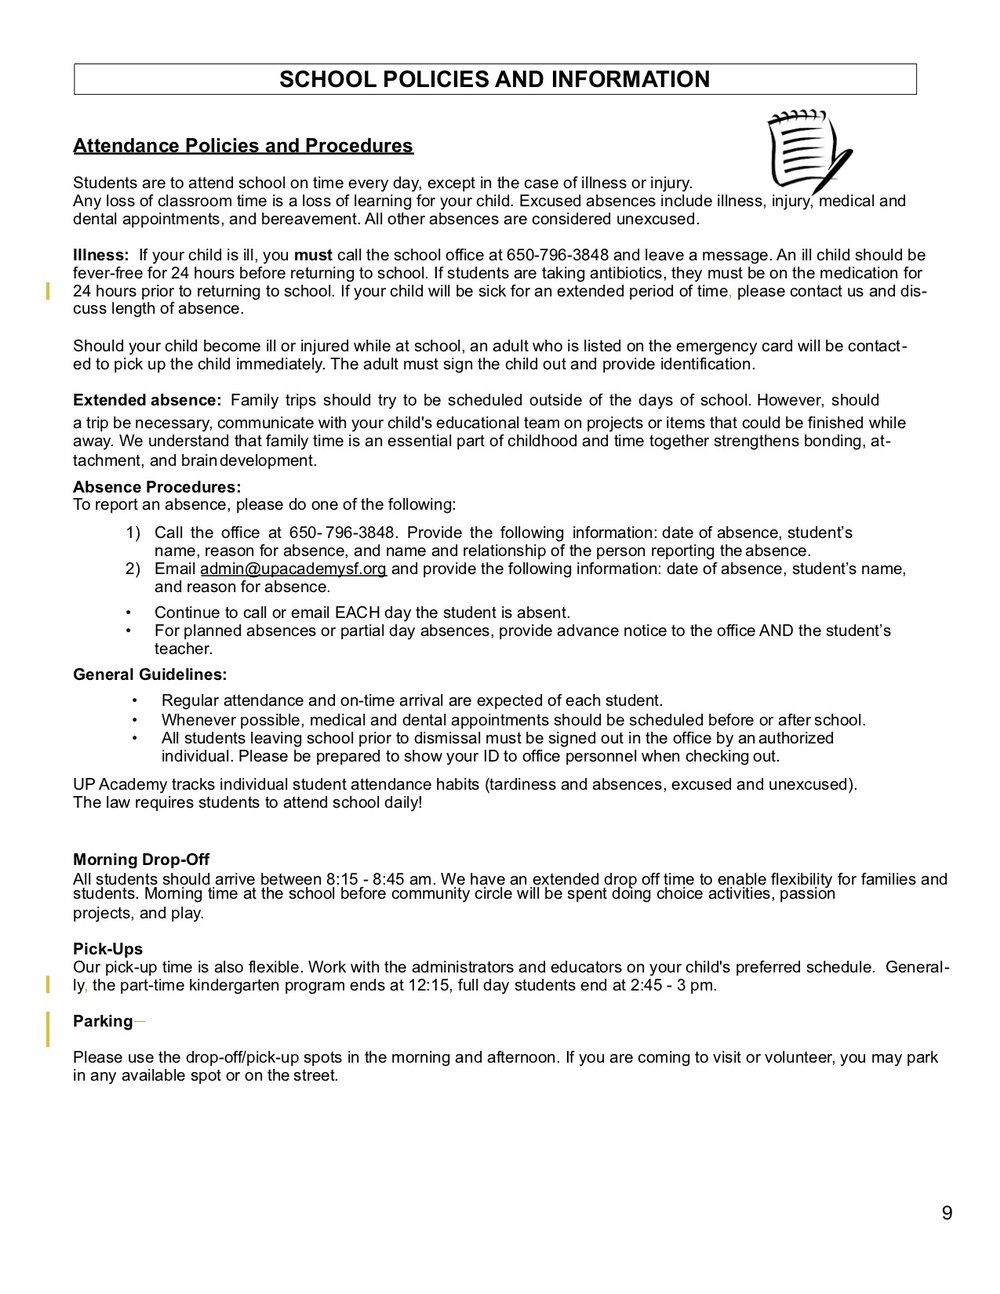 18-19 Parent and Student Handbook V4-8.jpg